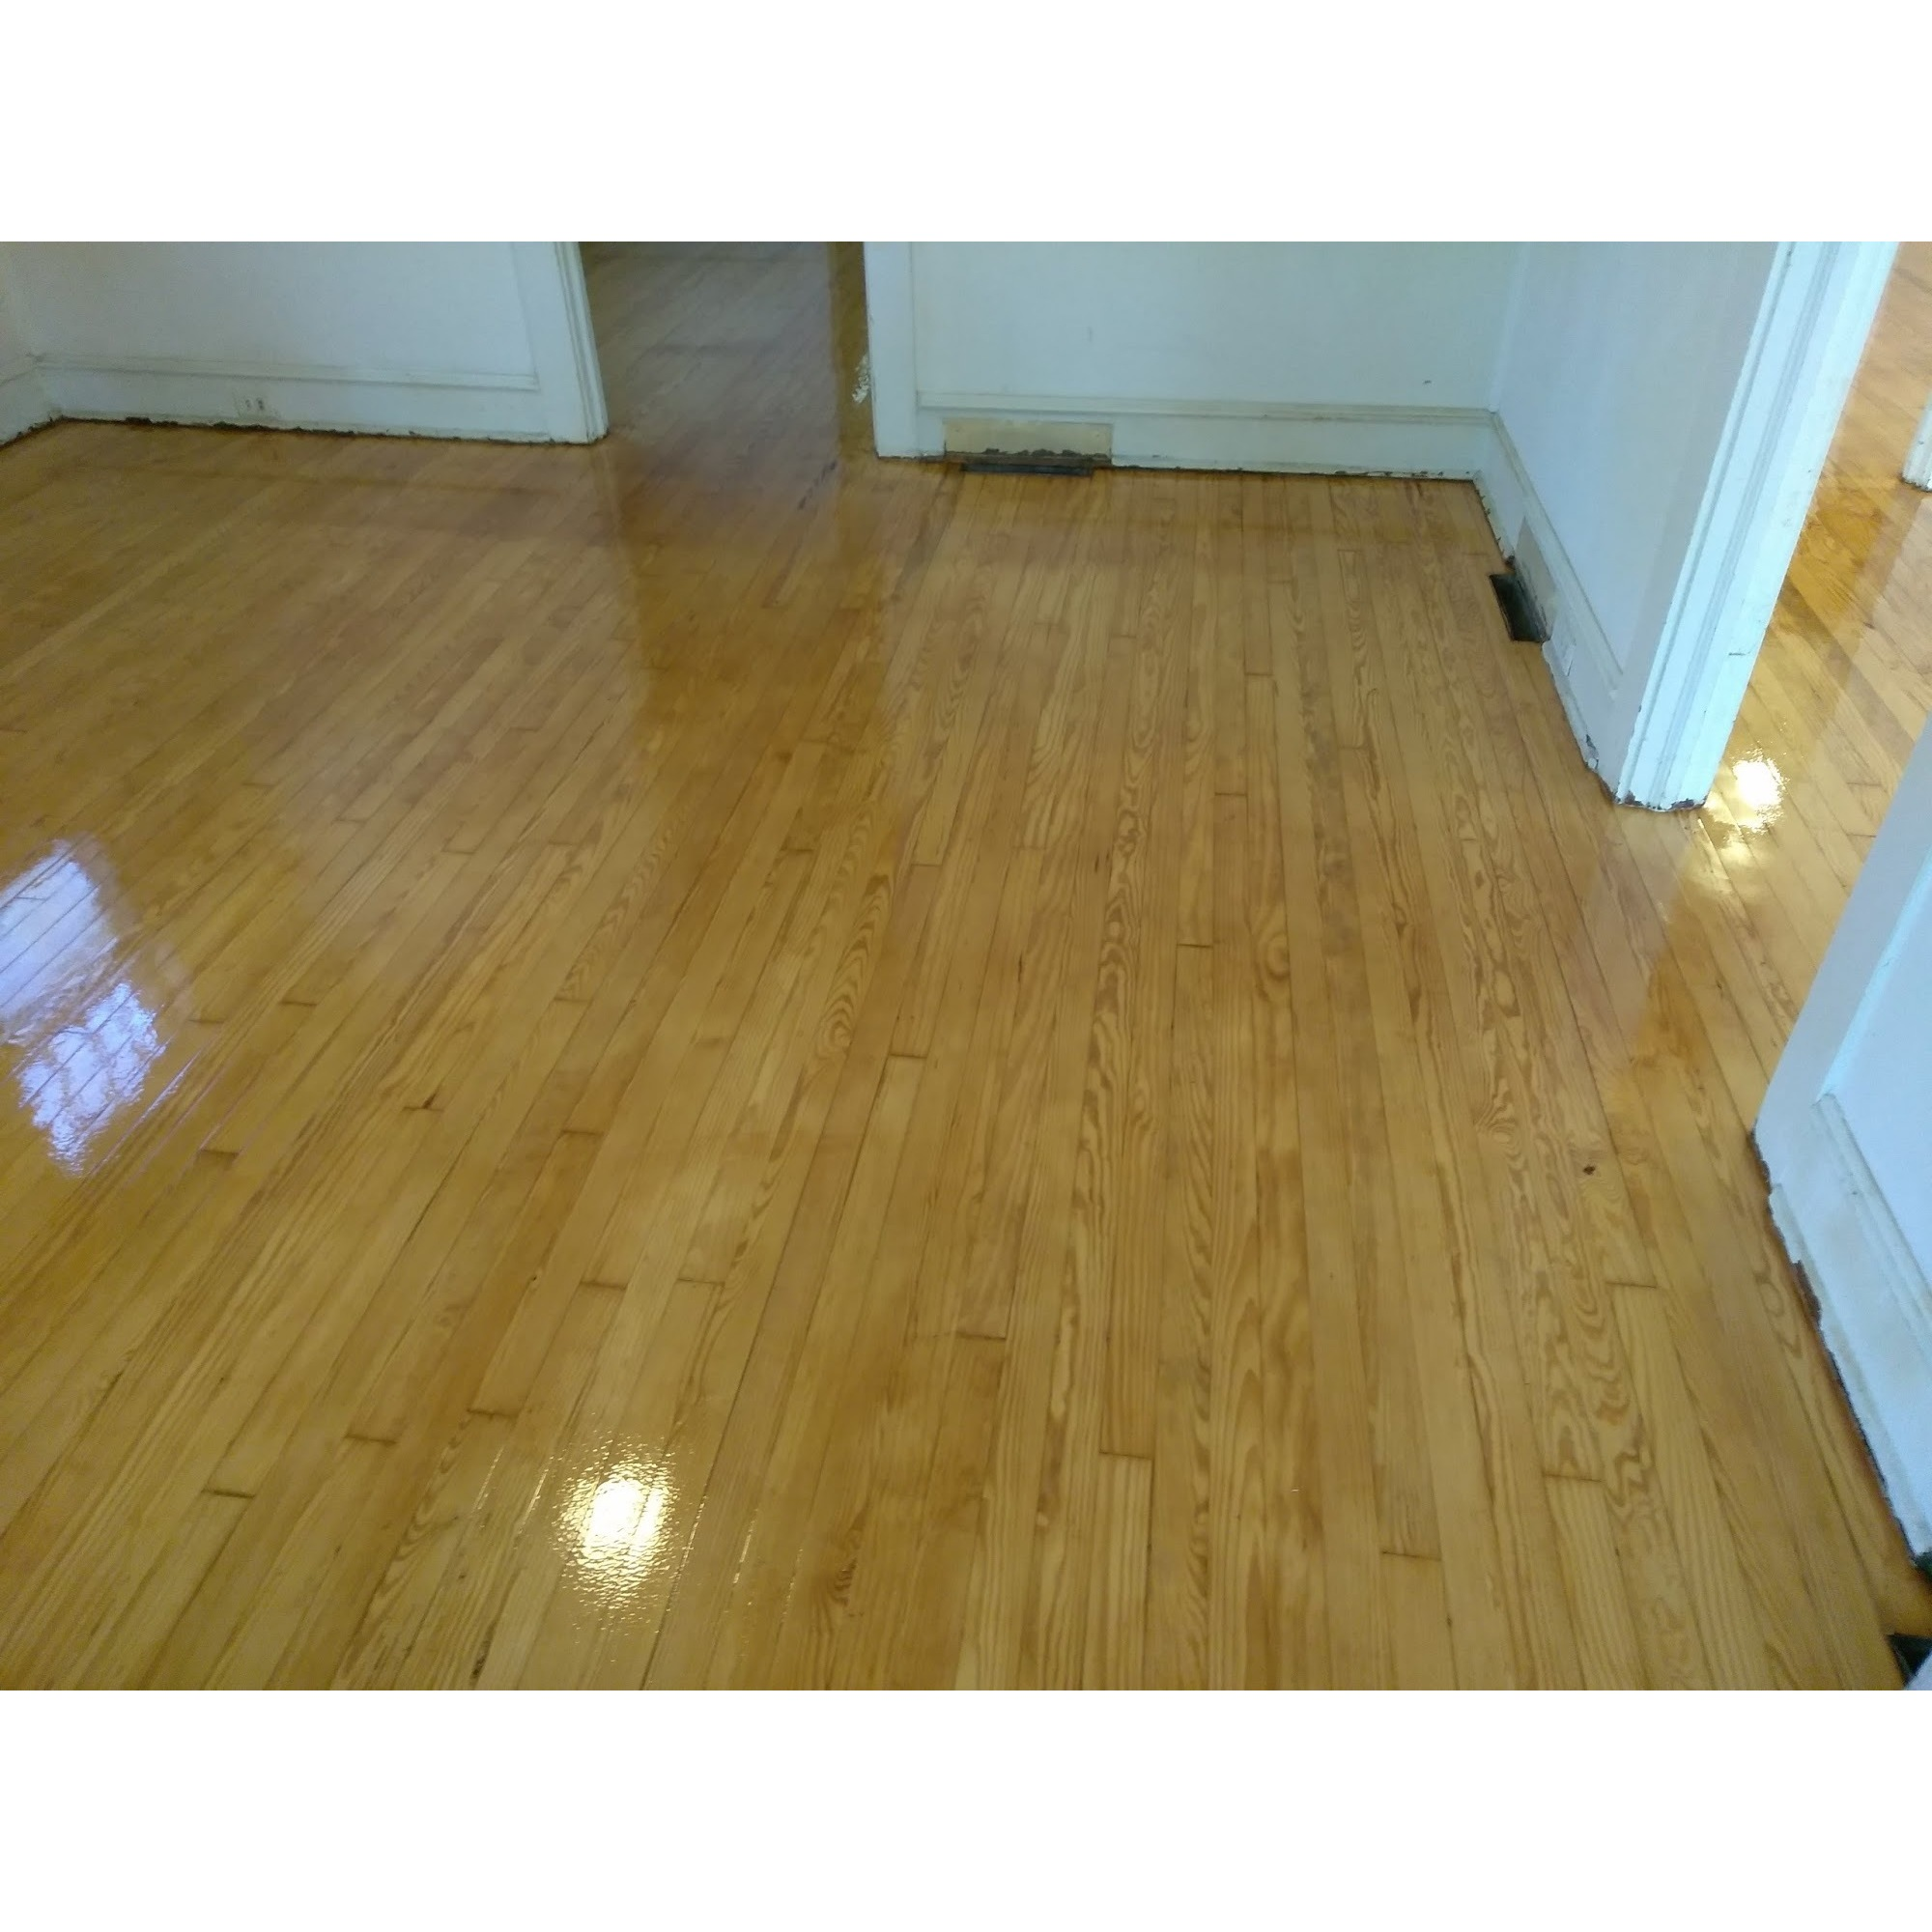 Mundy's Floor Sanding, and Finishing Contractor - Mooresville, NC 28115 - (980)621-7110 | ShowMeLocal.com